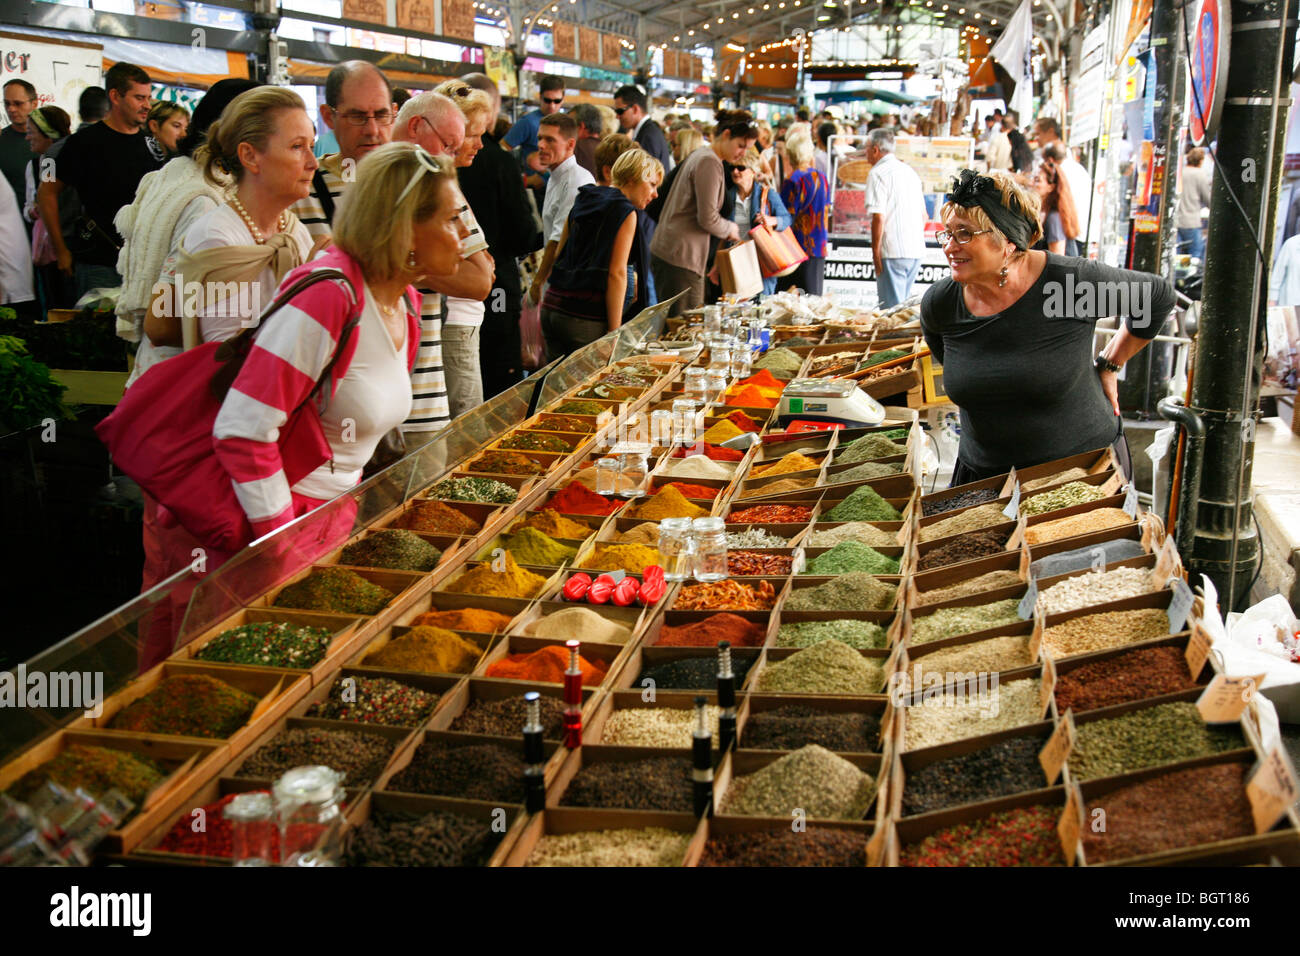 Spice stall at the Cours Massena market in the old town, Antibes, Alpes Maritimes, Provence, France. - Stock Image